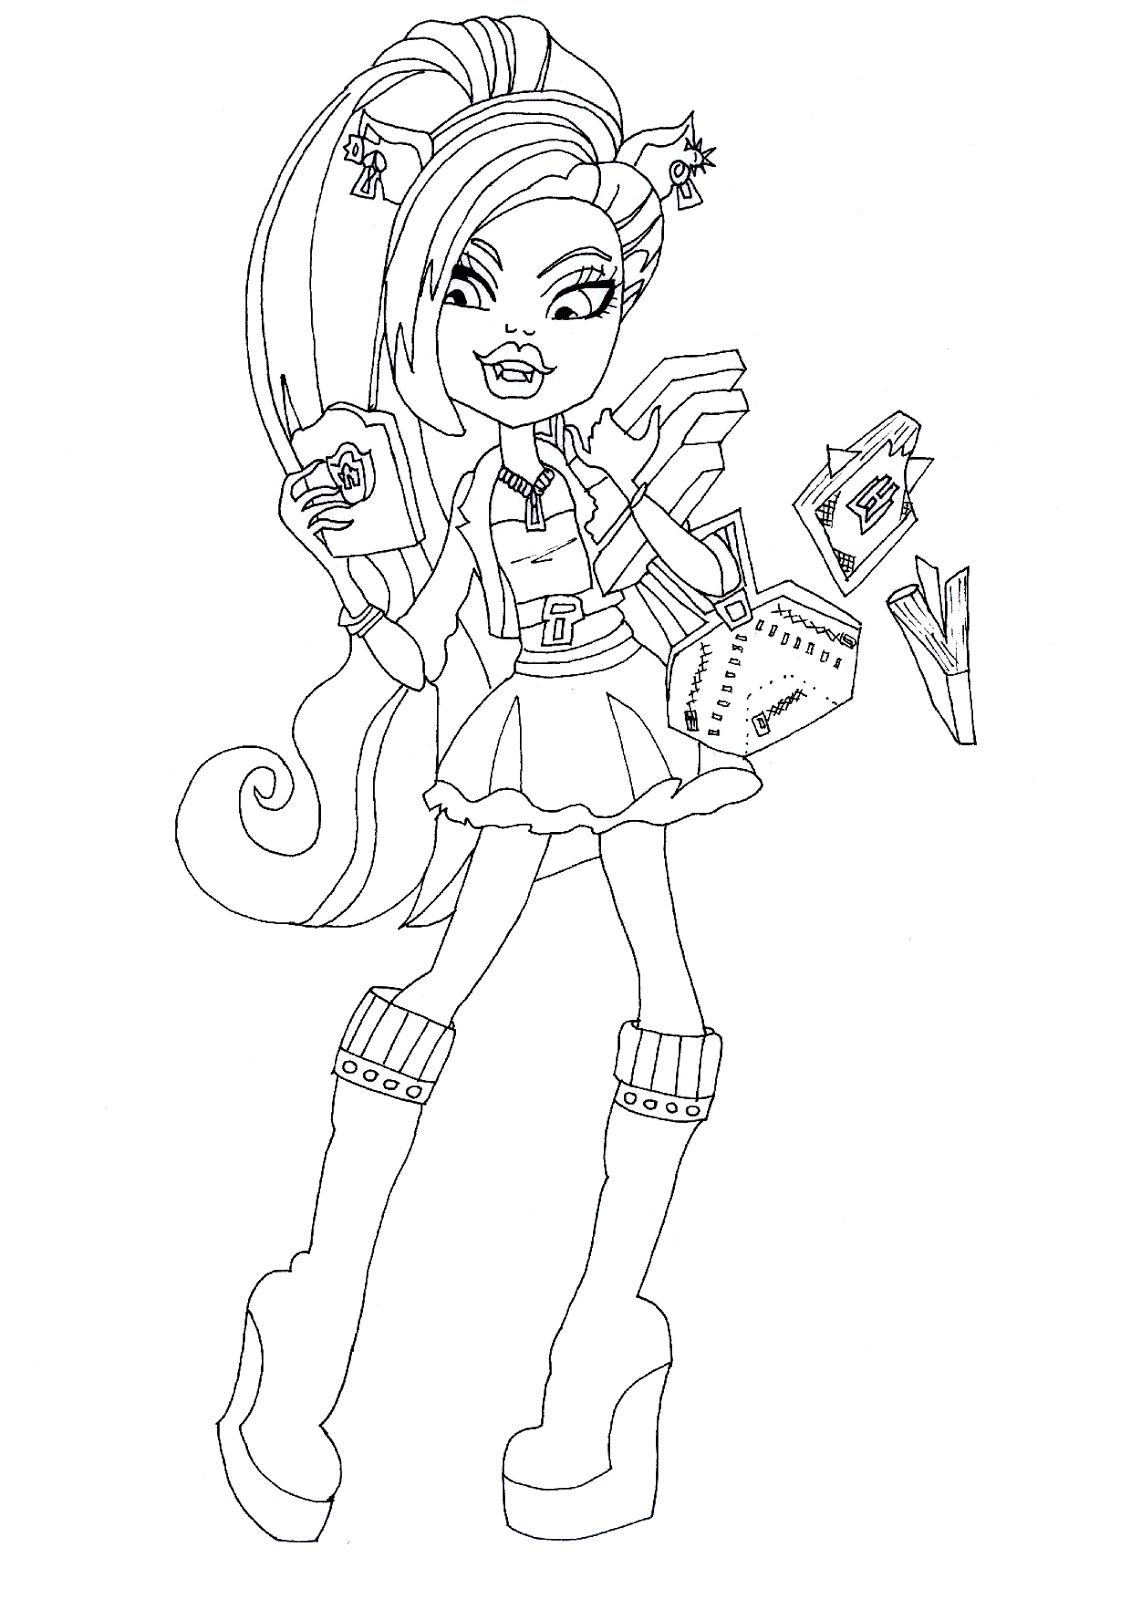 catty noir coloring pages - photo#23